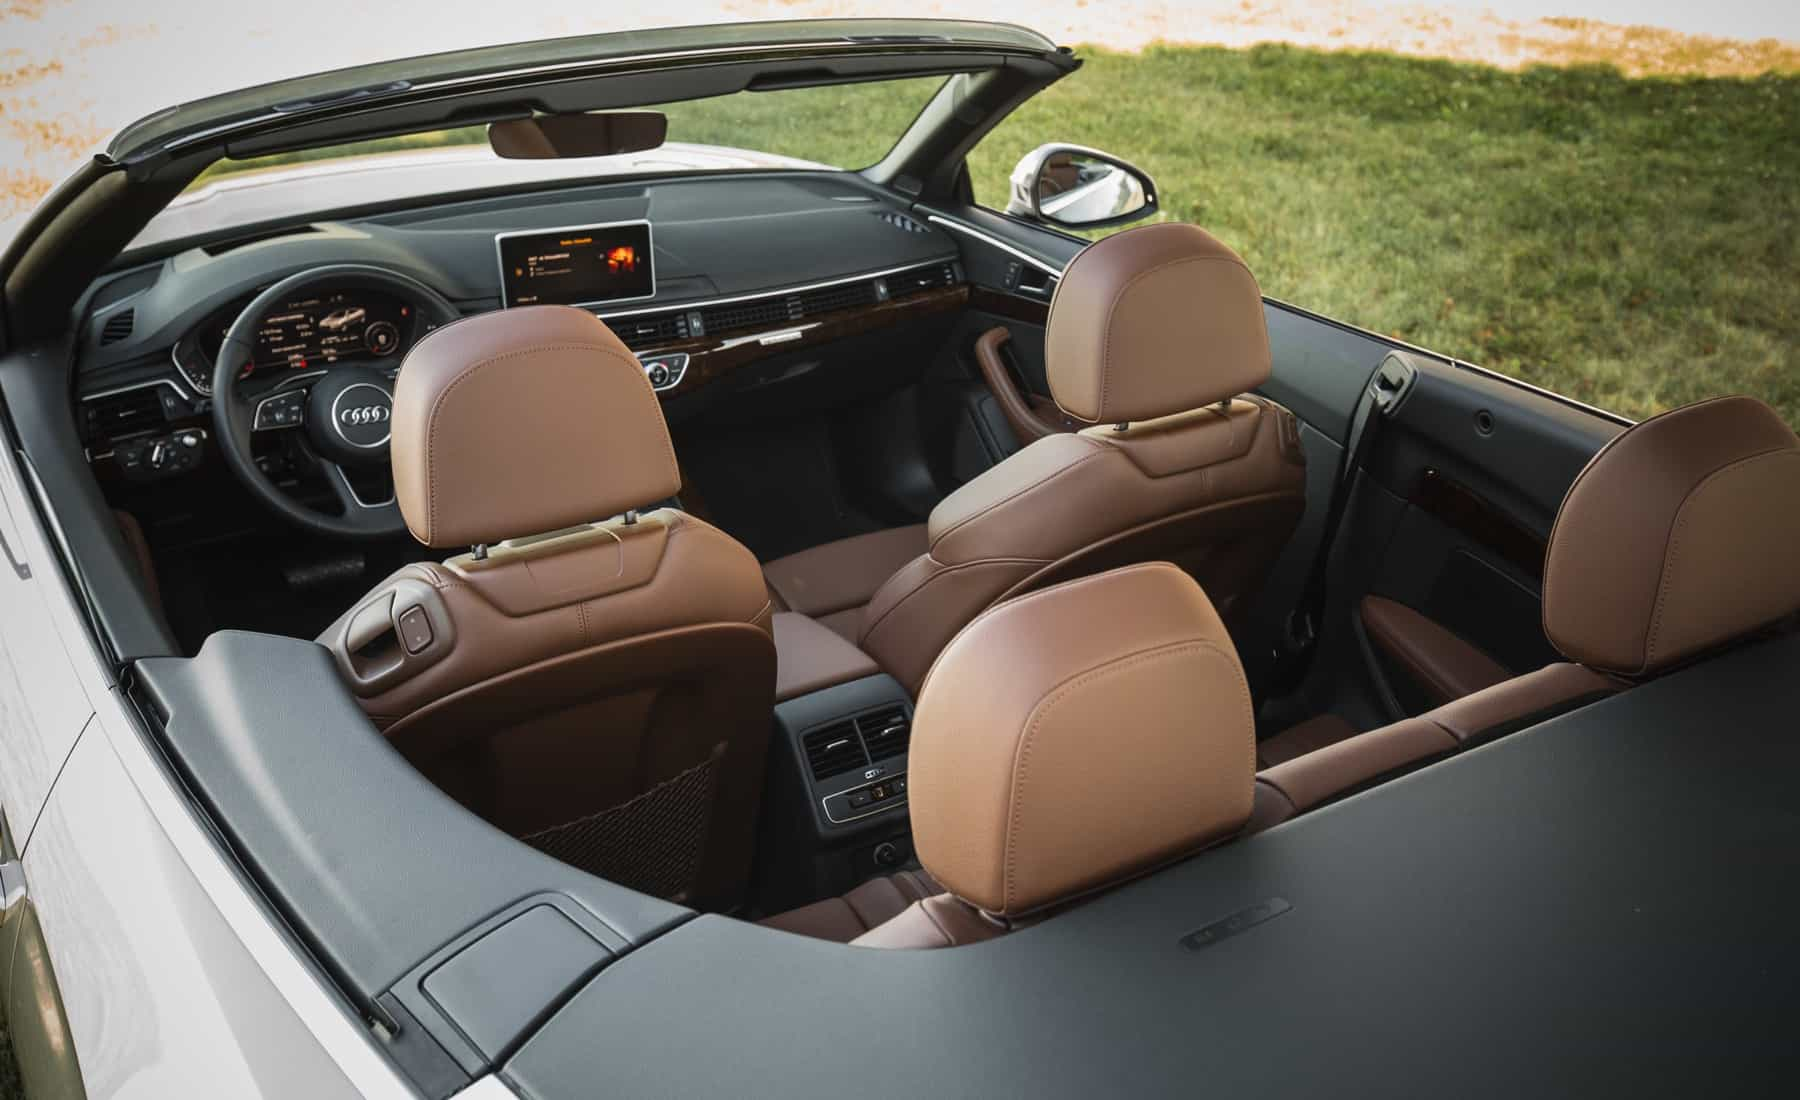 2018 Audi A5 Cabriolet Interior (Photo 11 of 45)